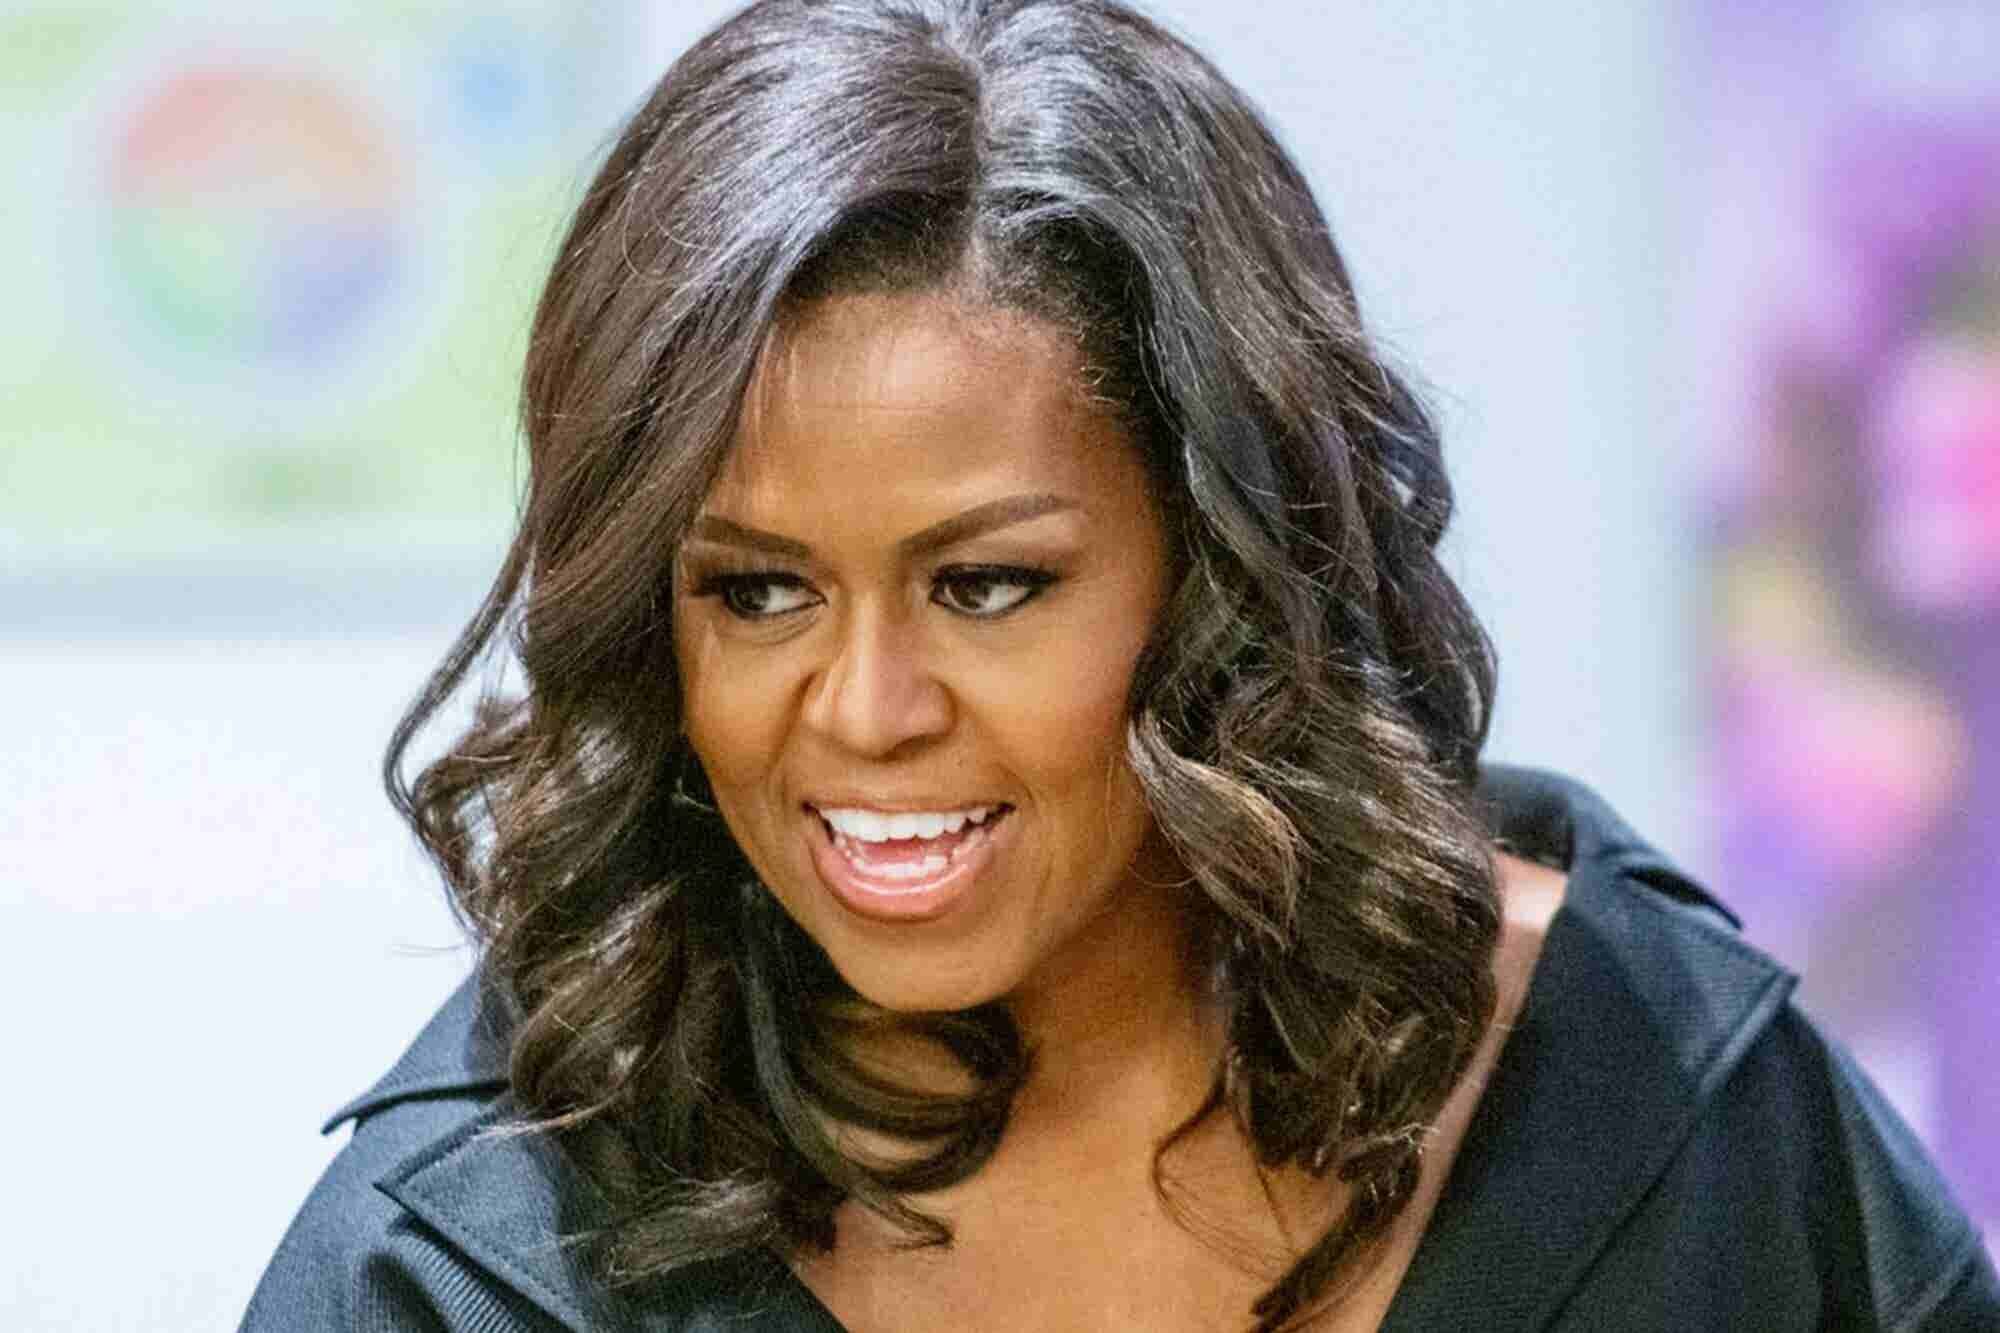 Michelle Obama on Sheryl Sandberg's 'Lean In' Strategy: 'That S--t Doe...